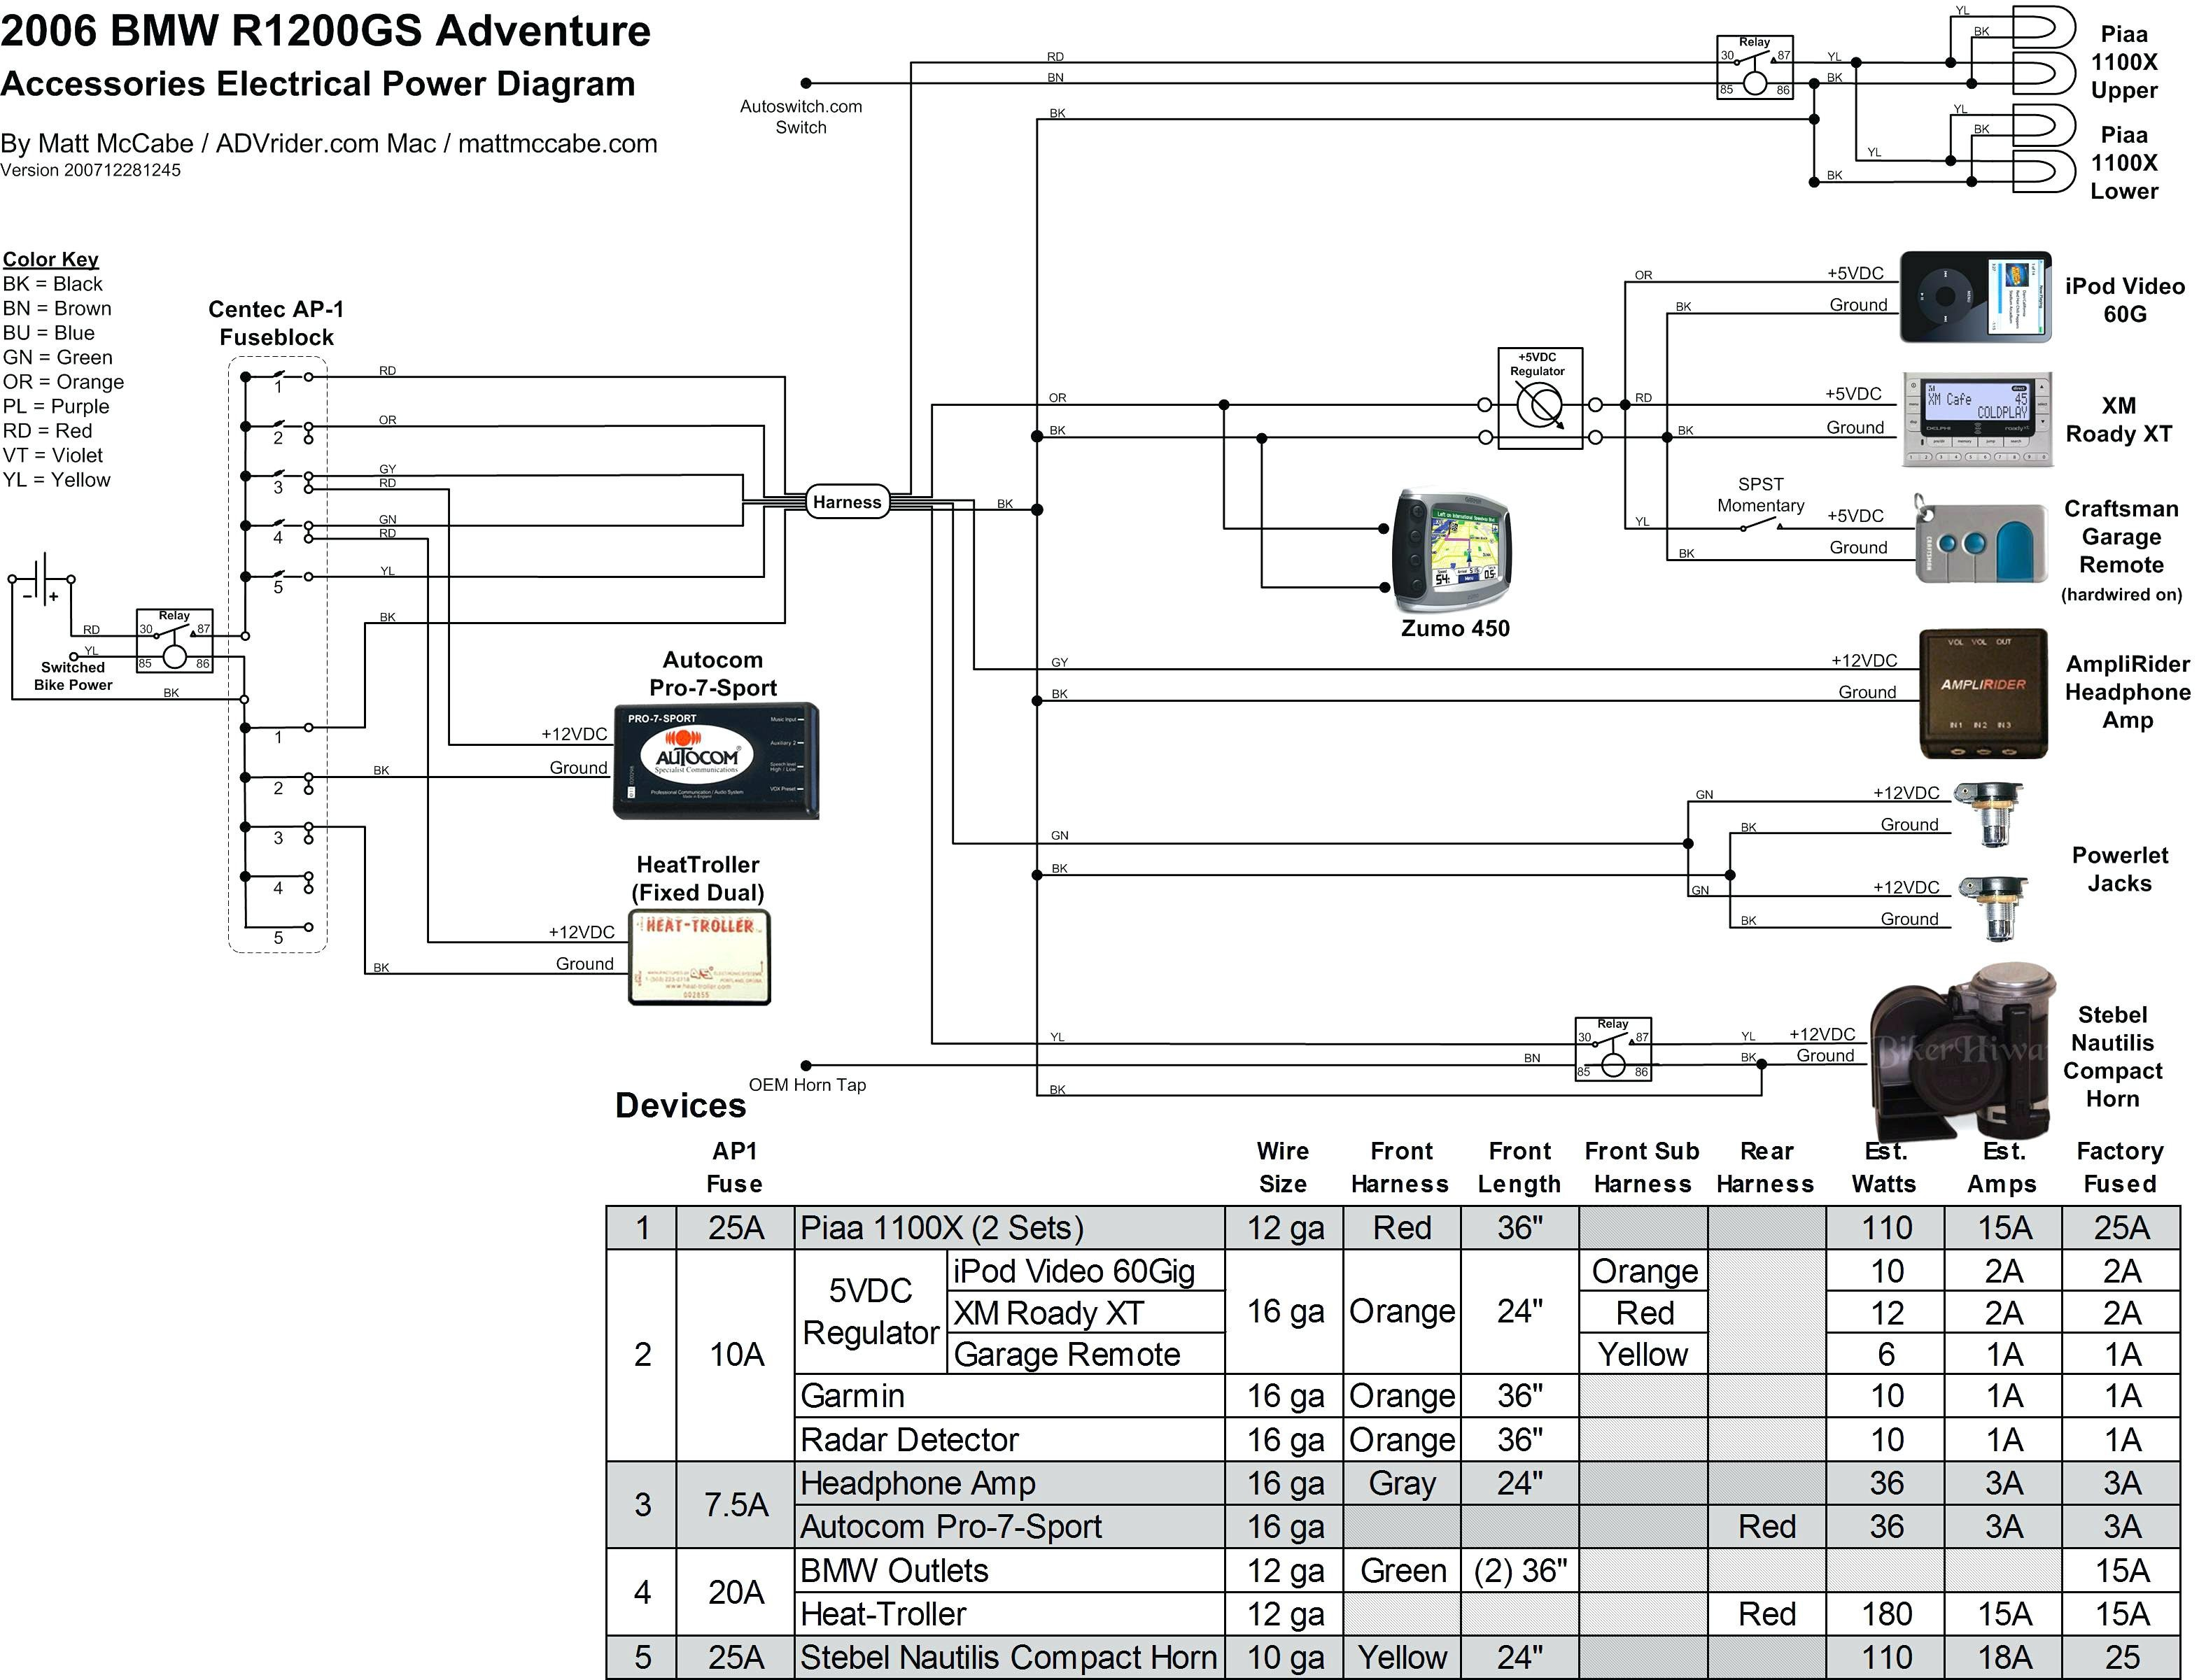 Stereo Wiring Diagram Beautiful Lovely Bmw X5 Radio Wiring Diagram Gallery Electrical and Wiring